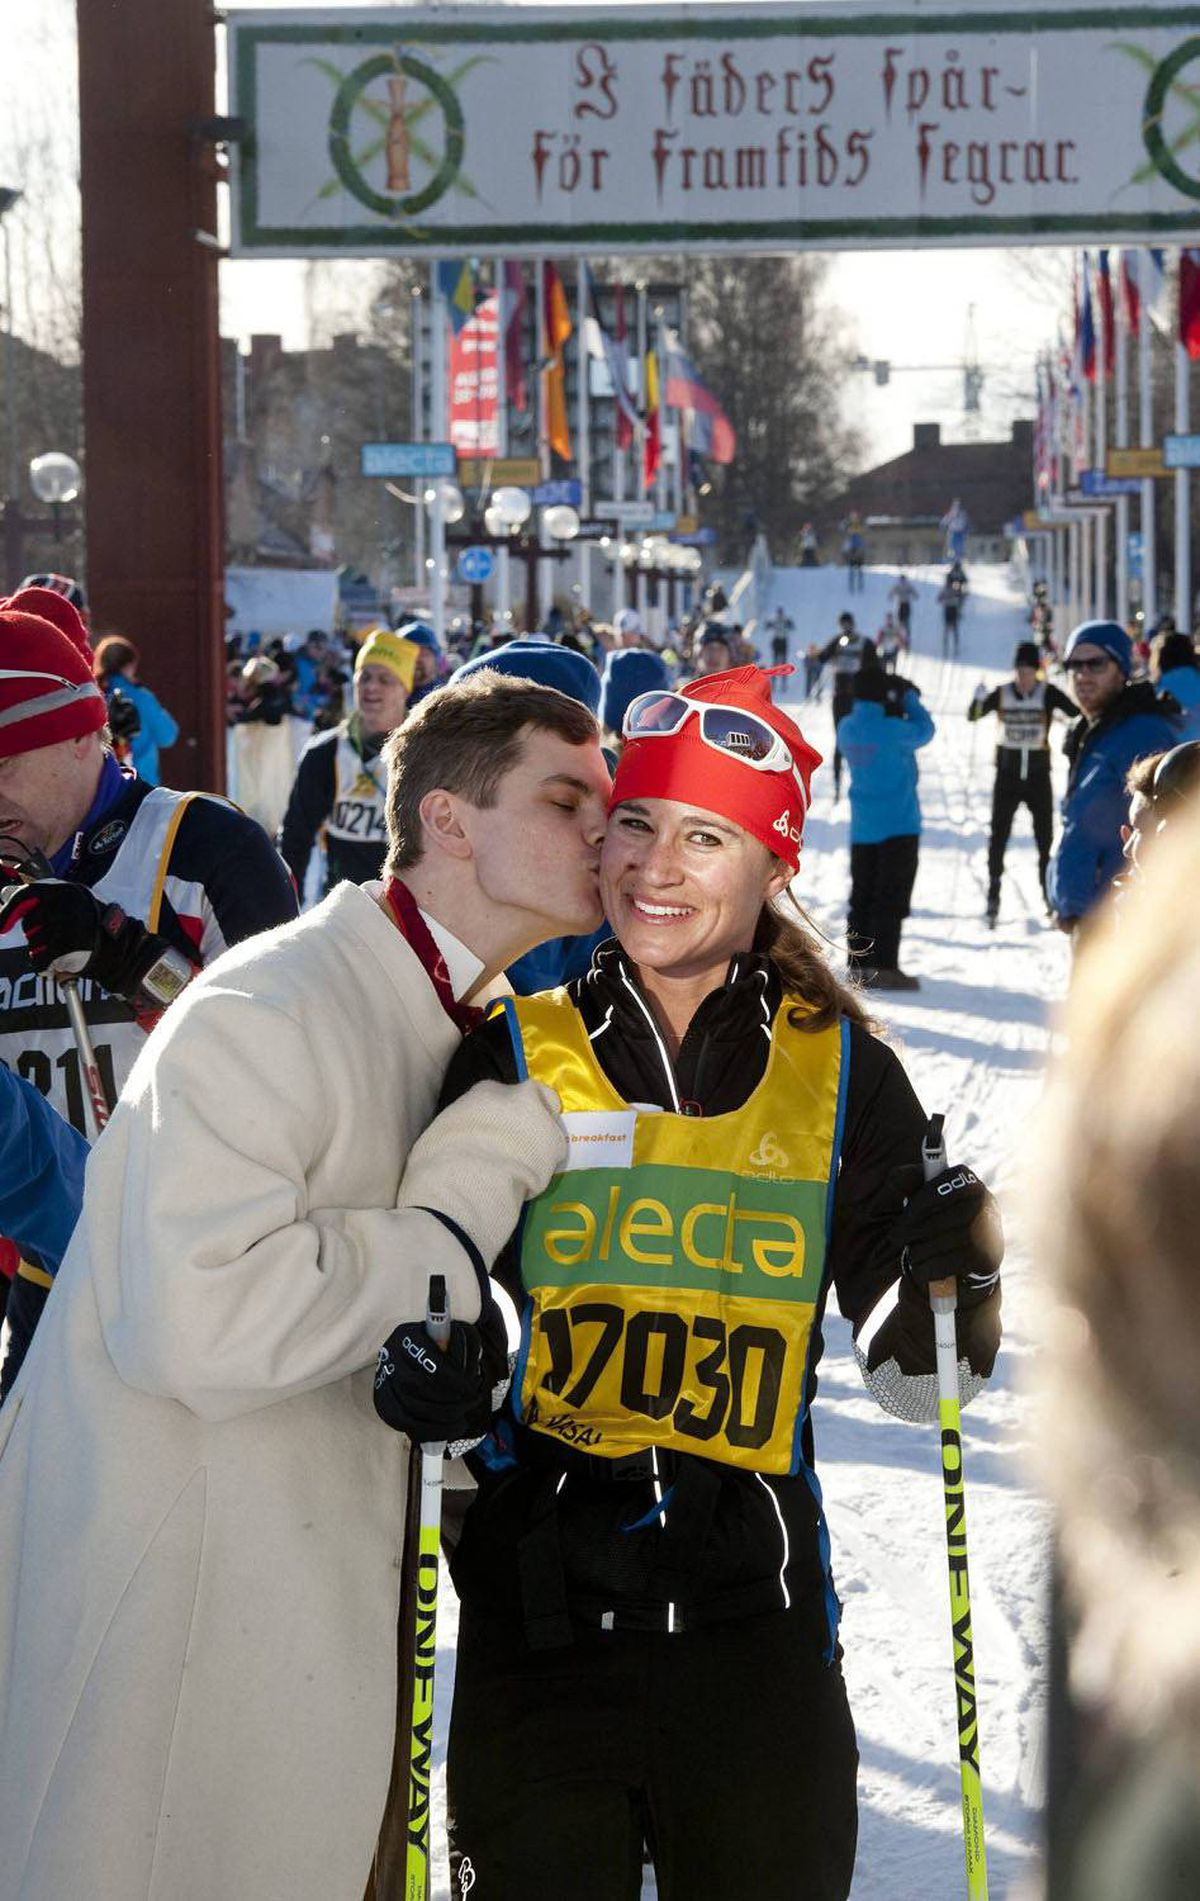 Pippa stays in shape through a range of sports, and often competes in races. In March, she finished a 90-kilometre cross-country marathon in Sweden.